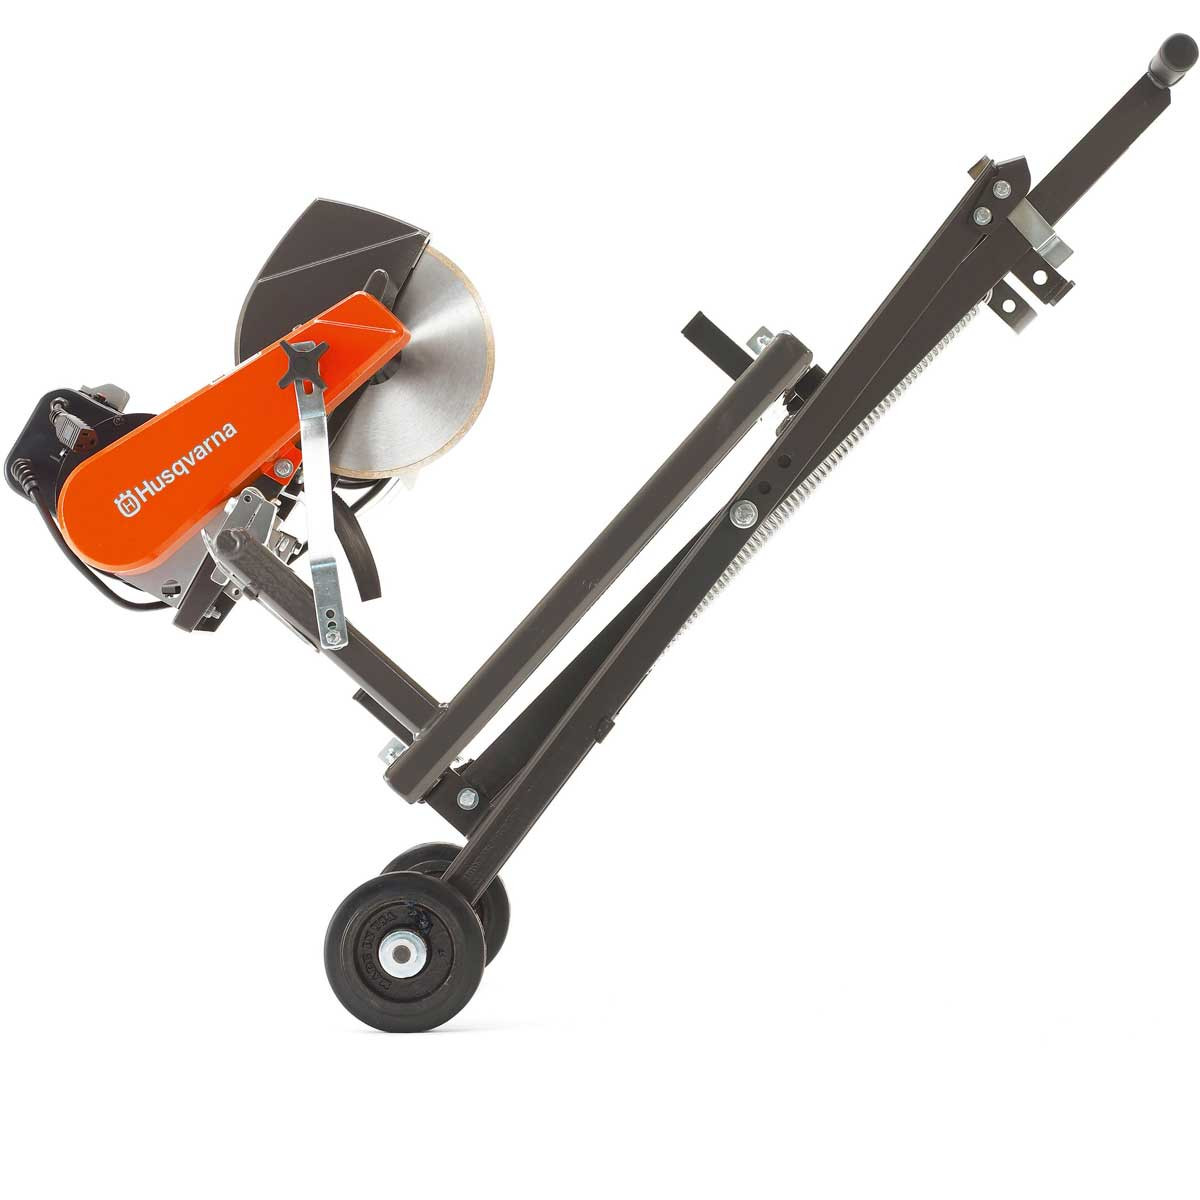 Adjustable rolling stand moving tile saw with wheel kit